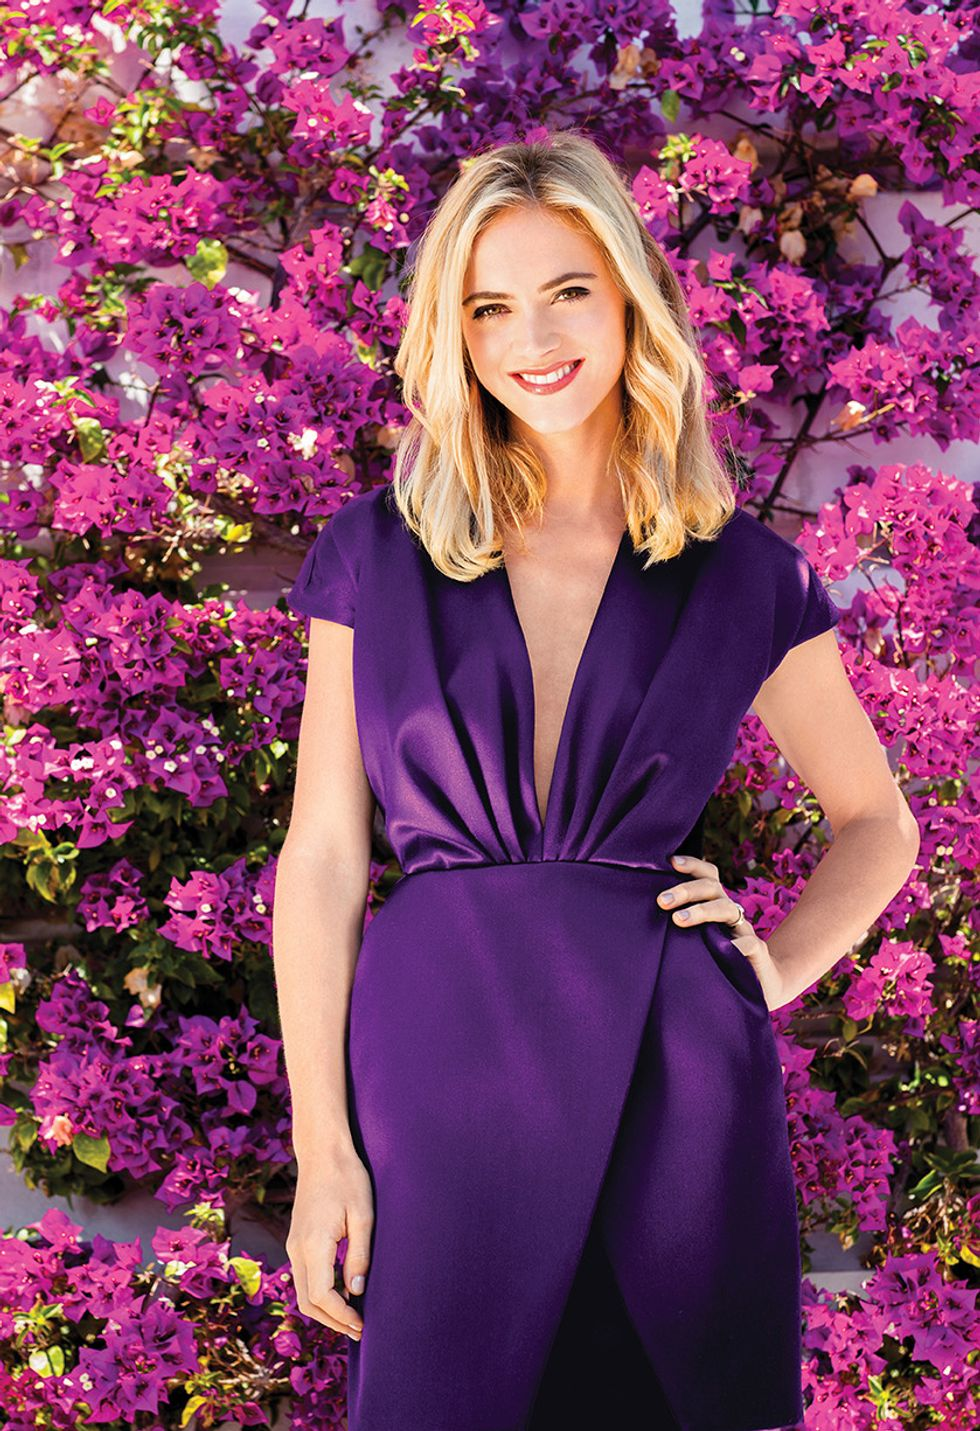 Emily Wickersham of NCIS in violet dress in front of flowers.